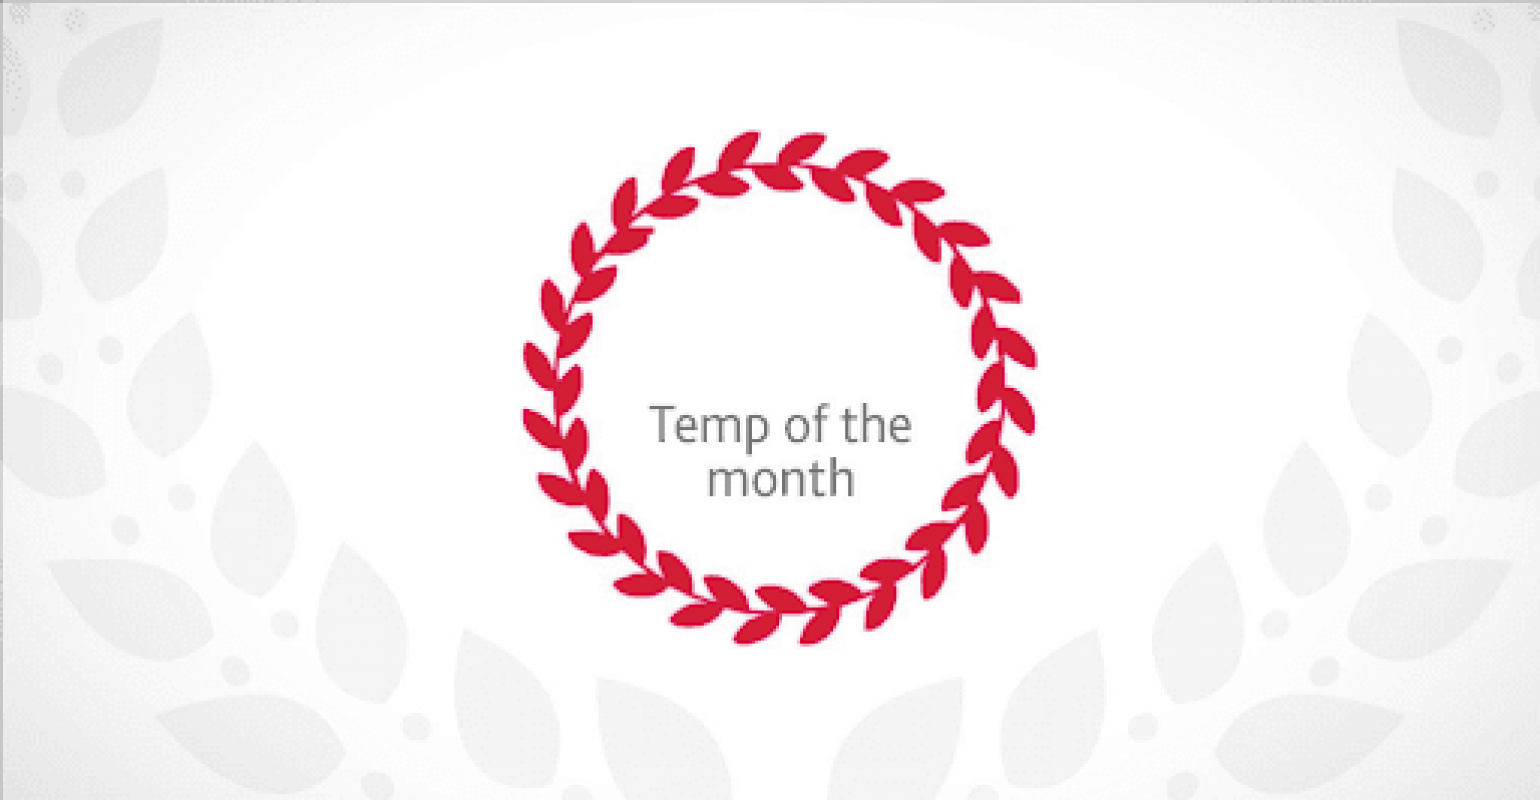 Temp of the Month - May 2019